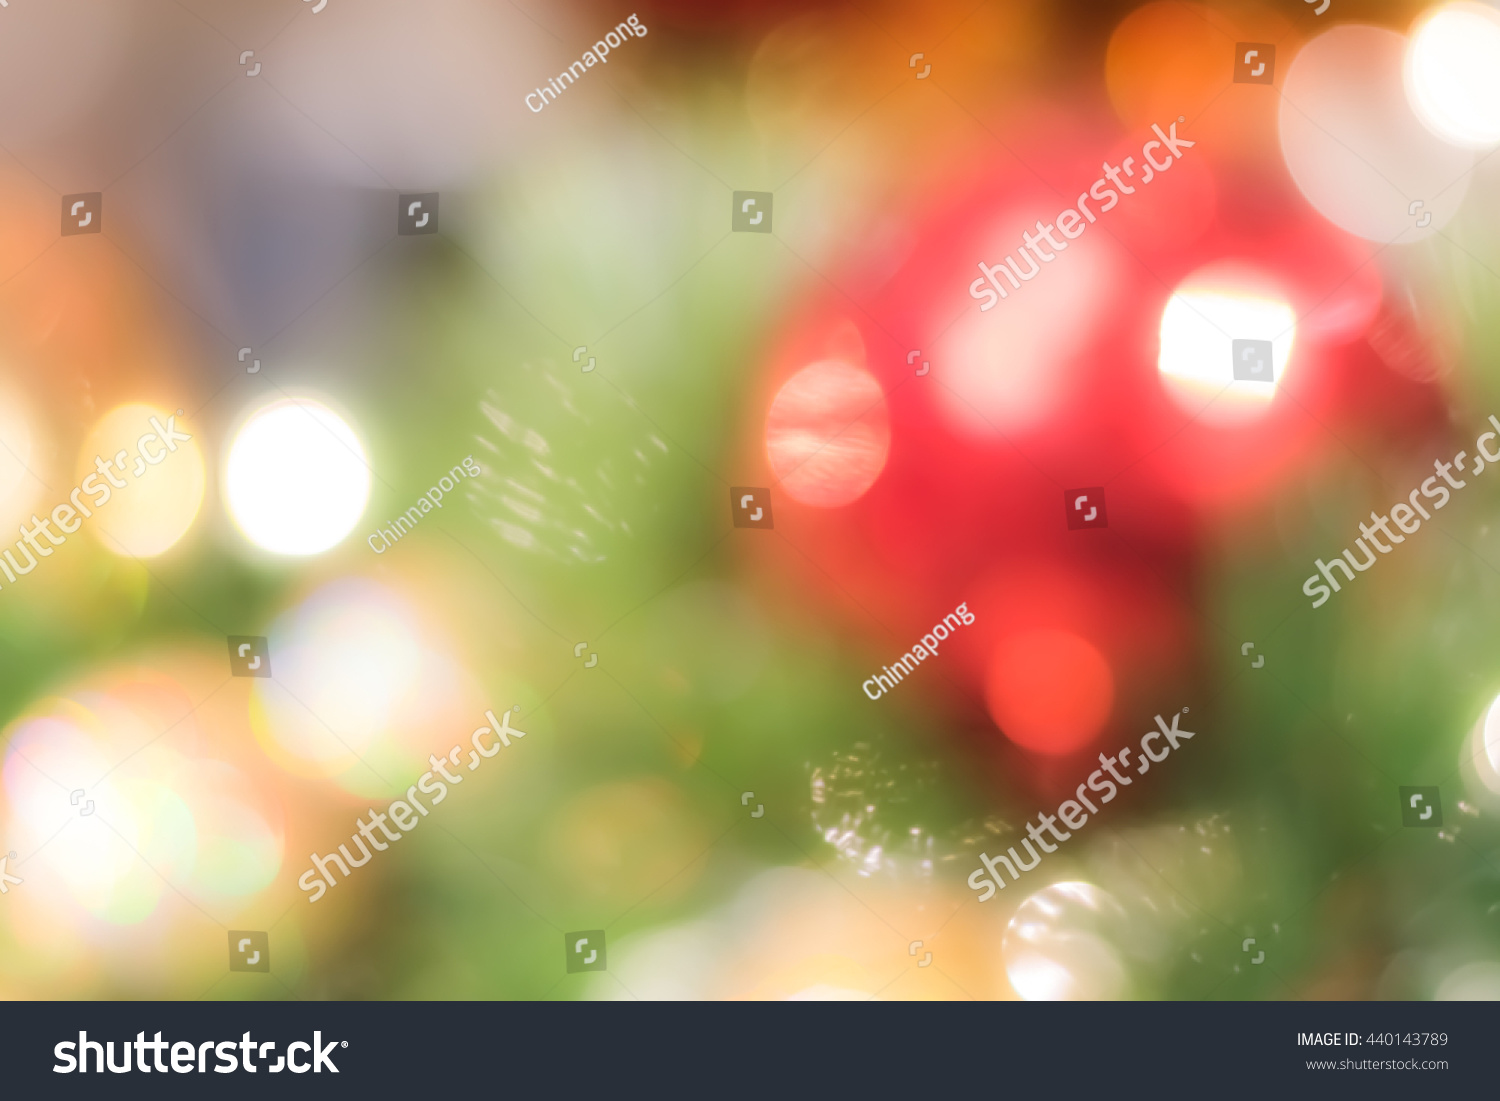 Blur Background Merry Christmas Party Celebration Stock ...